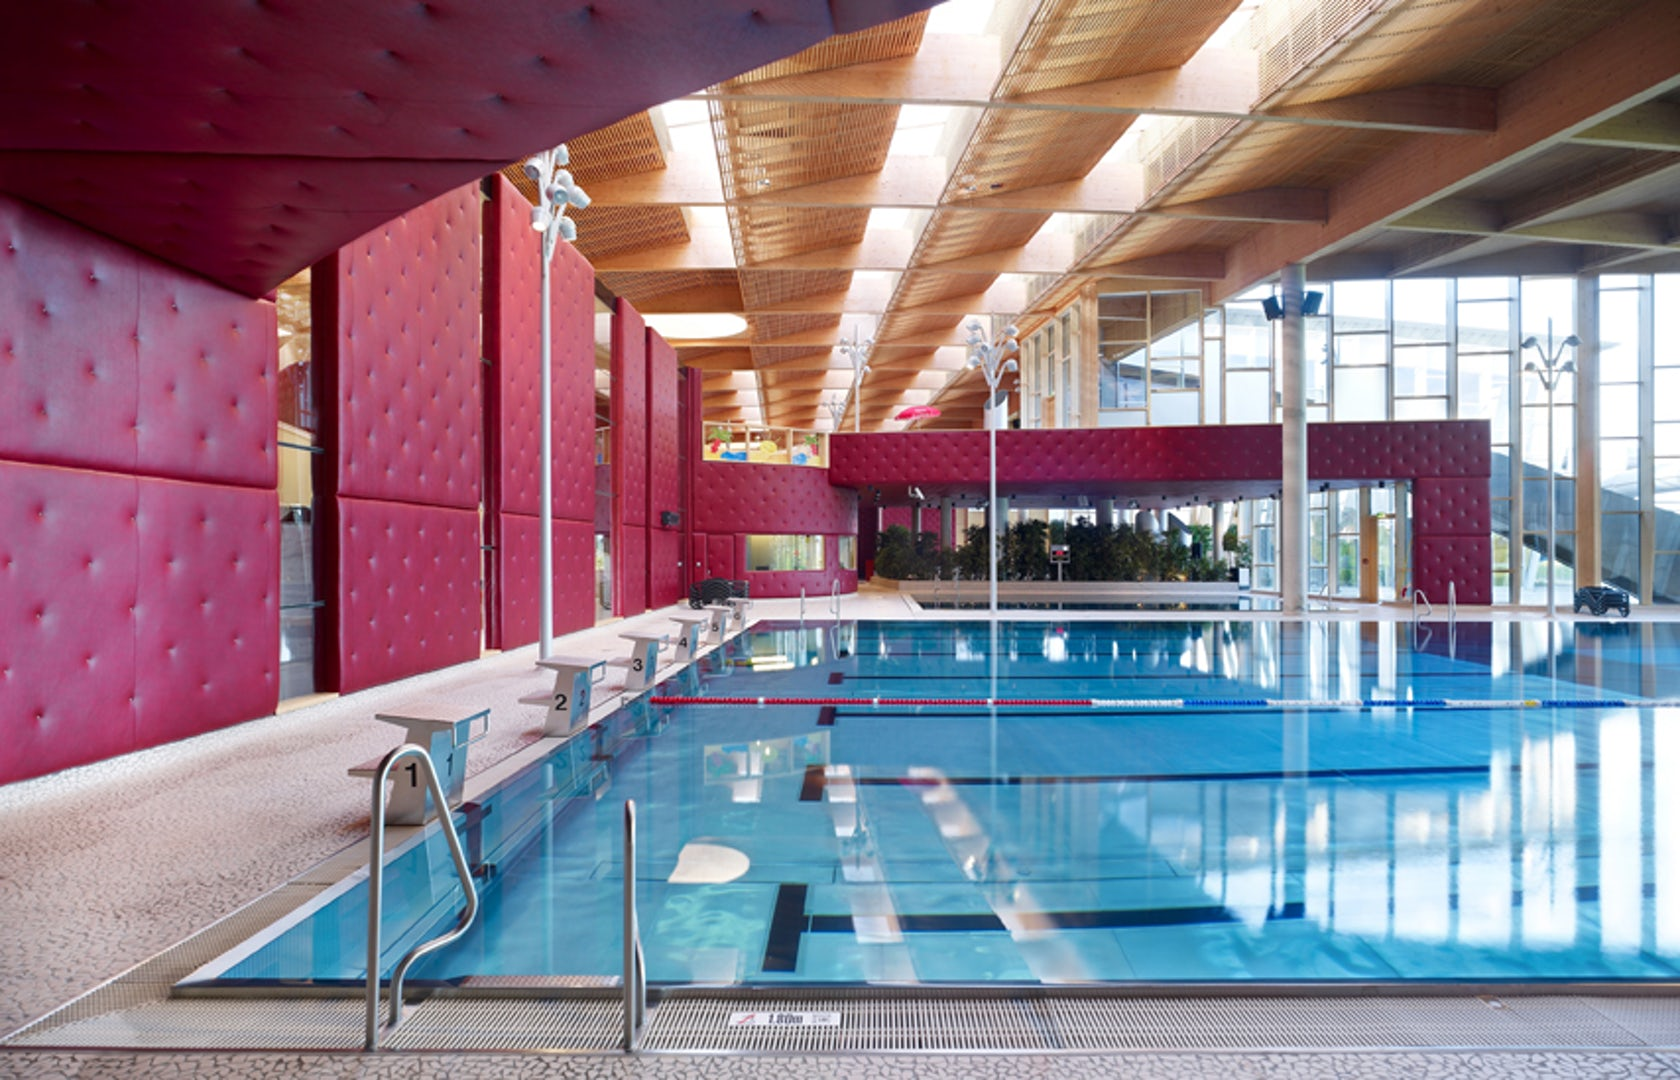 Les thermes leisure centre architizer for Swimming pool luxembourg kirchberg